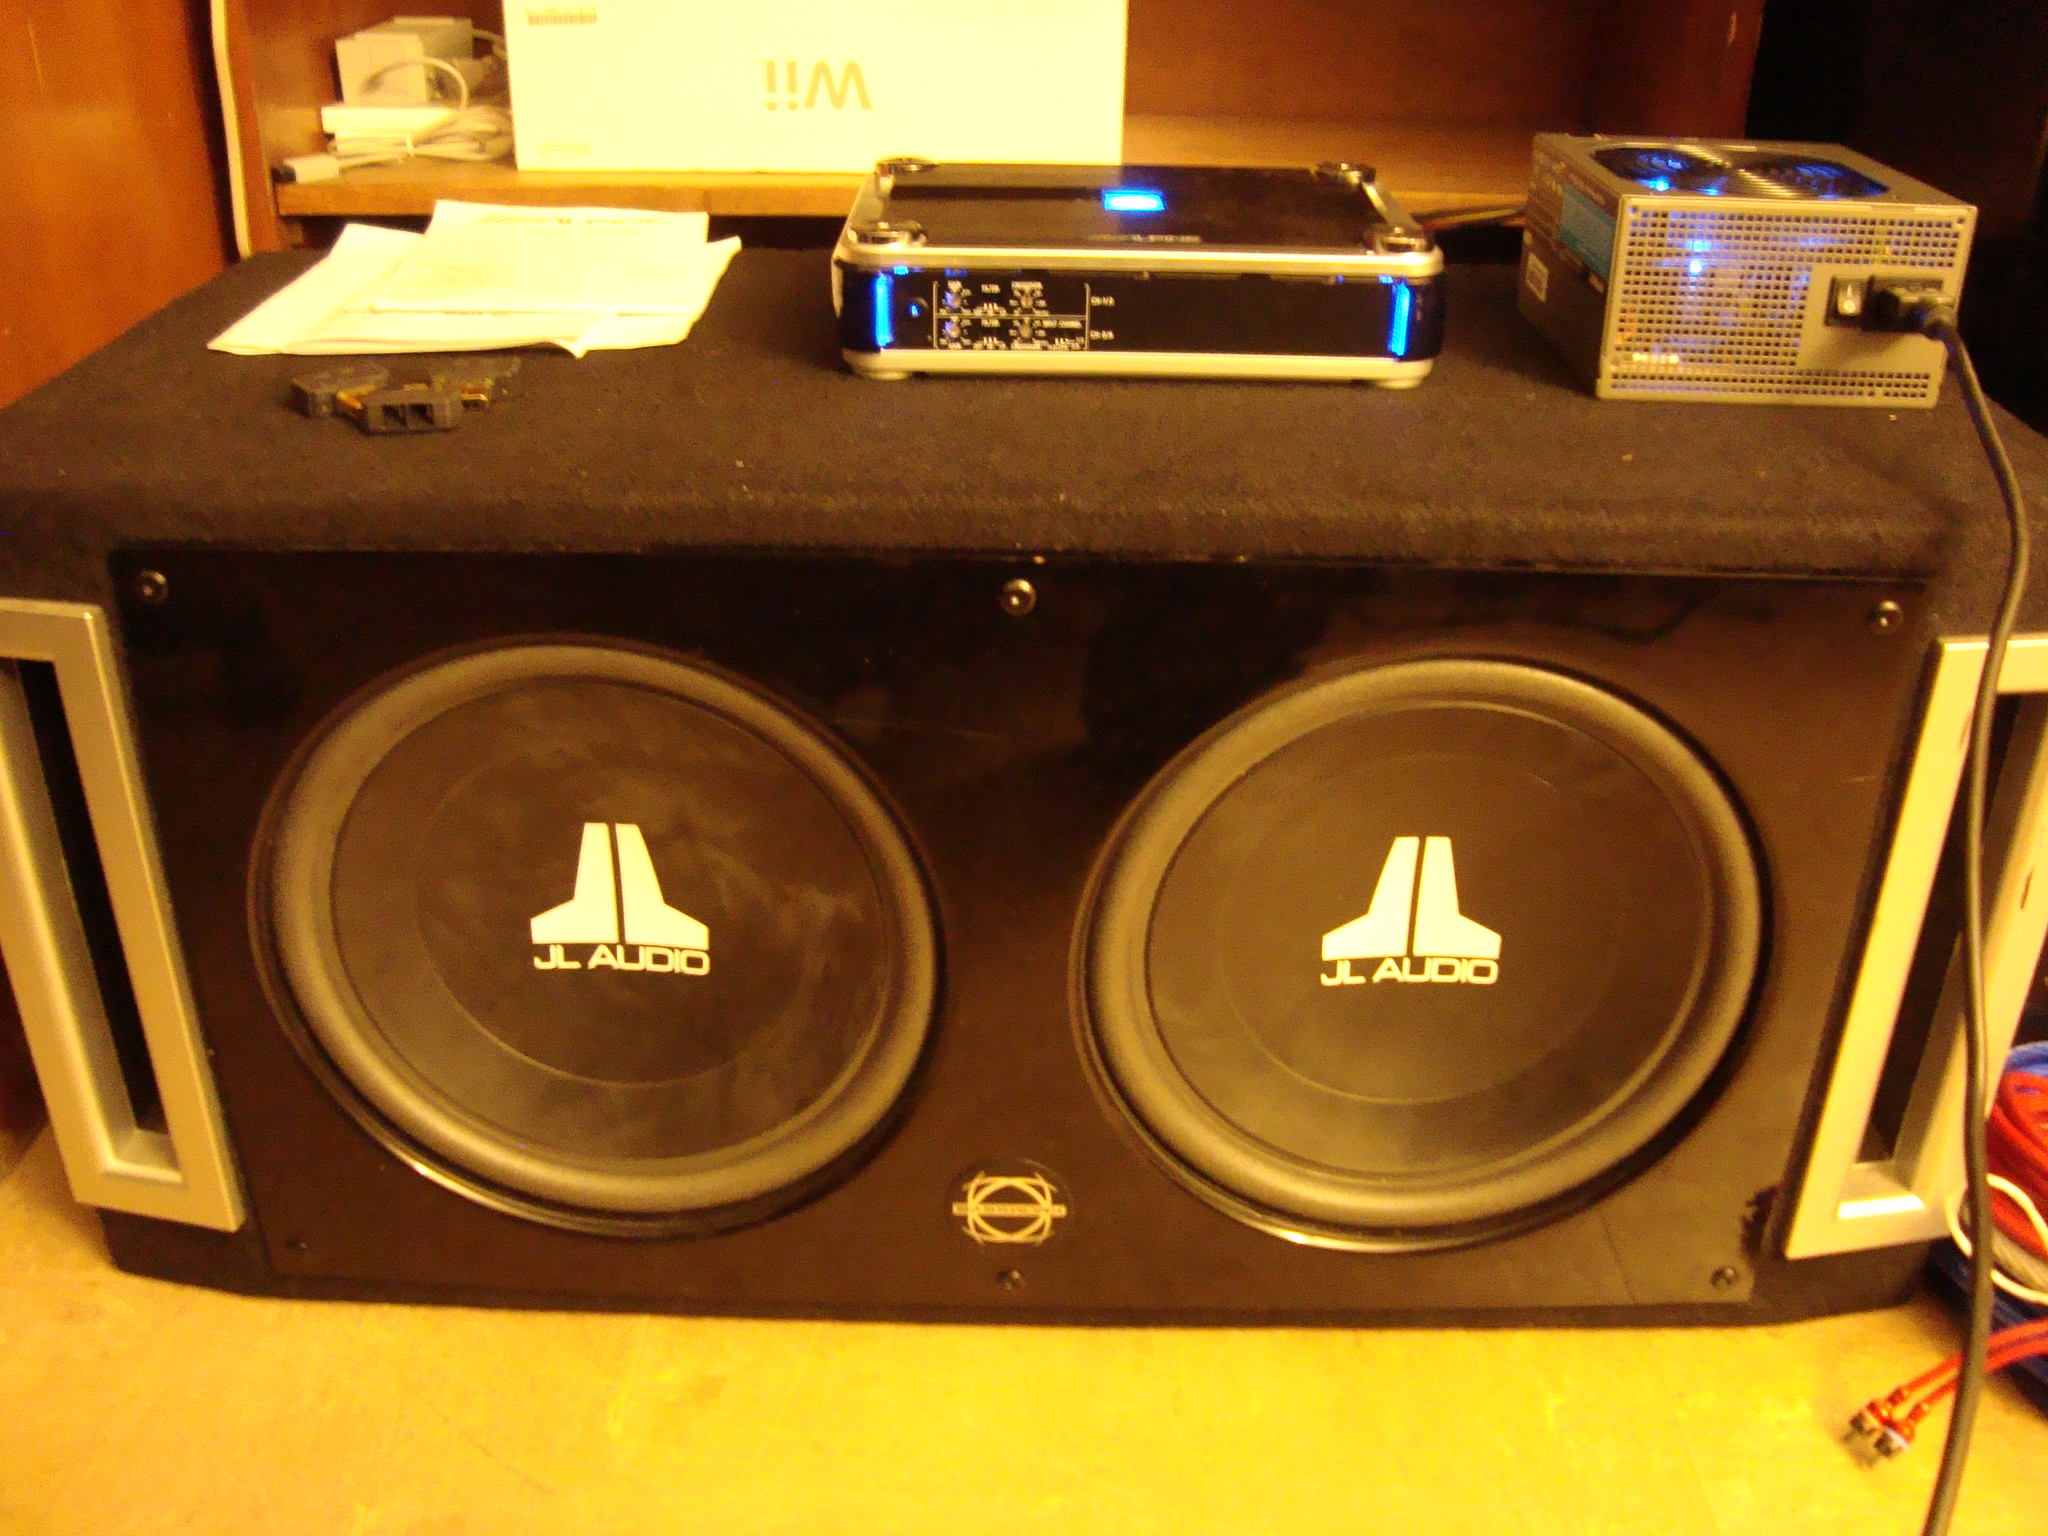 Hook up amp and subs in car